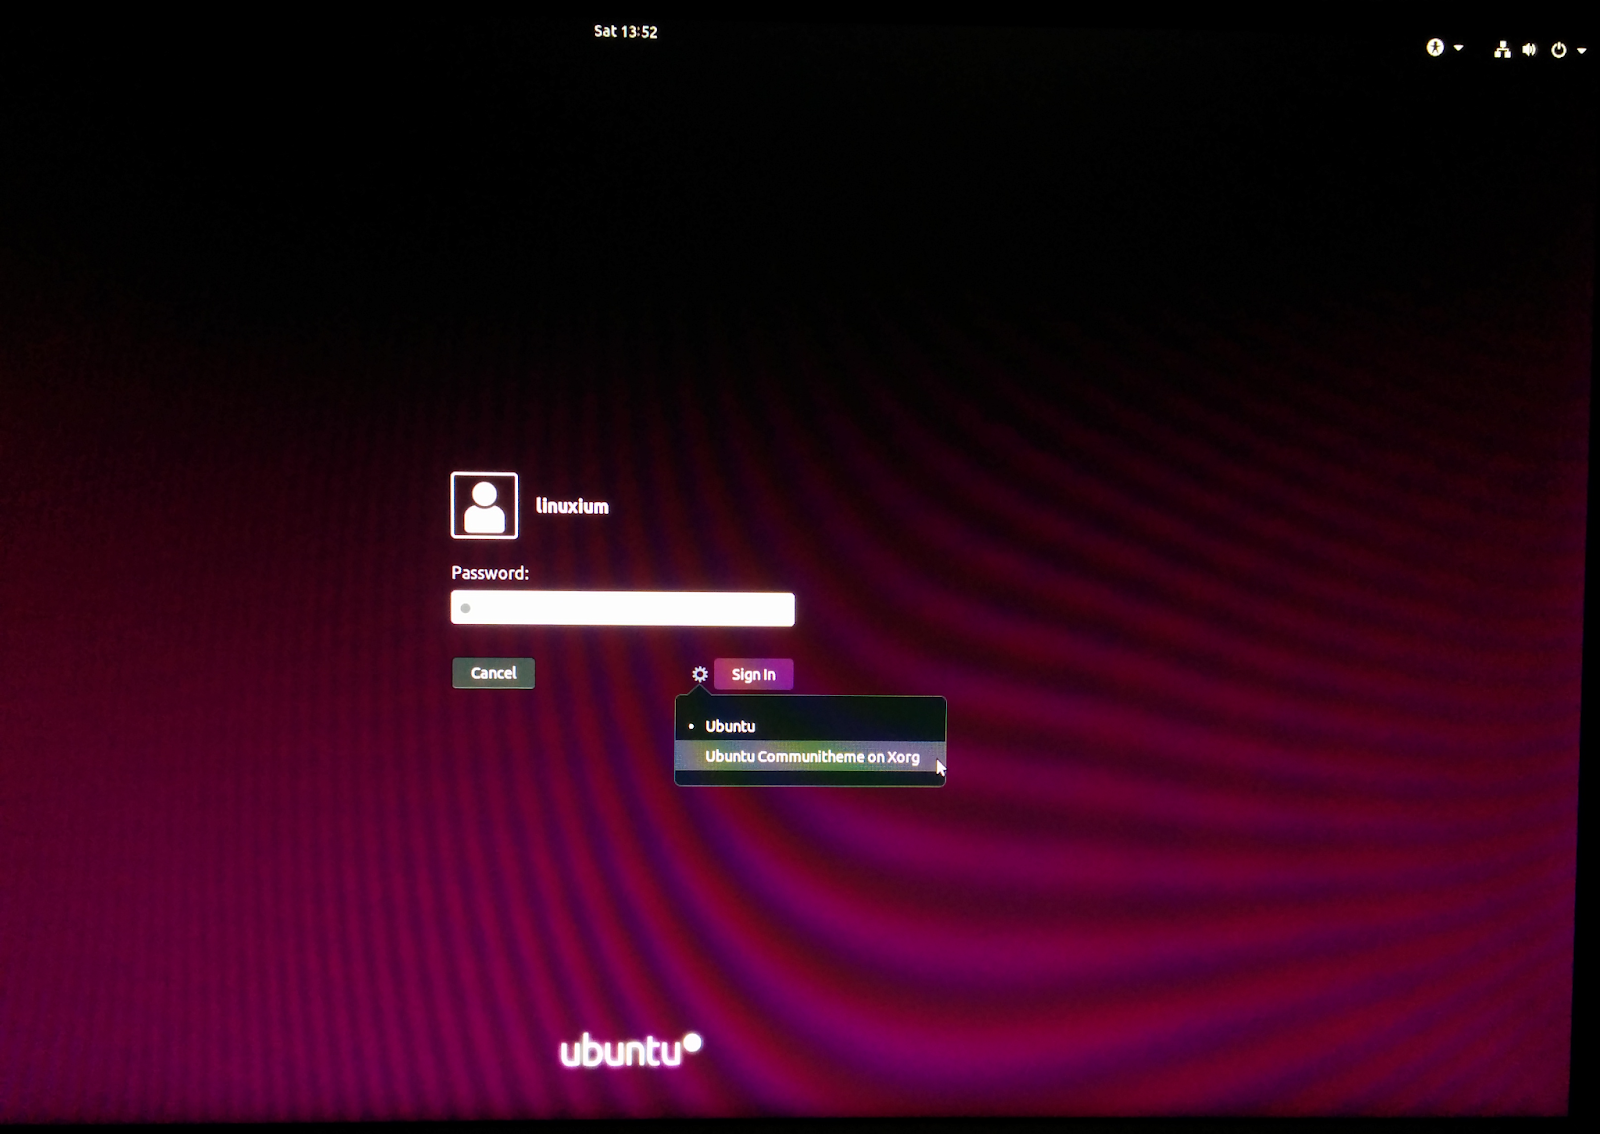 linuxium com au: Second look at Ubuntu 18 04 or Bionic